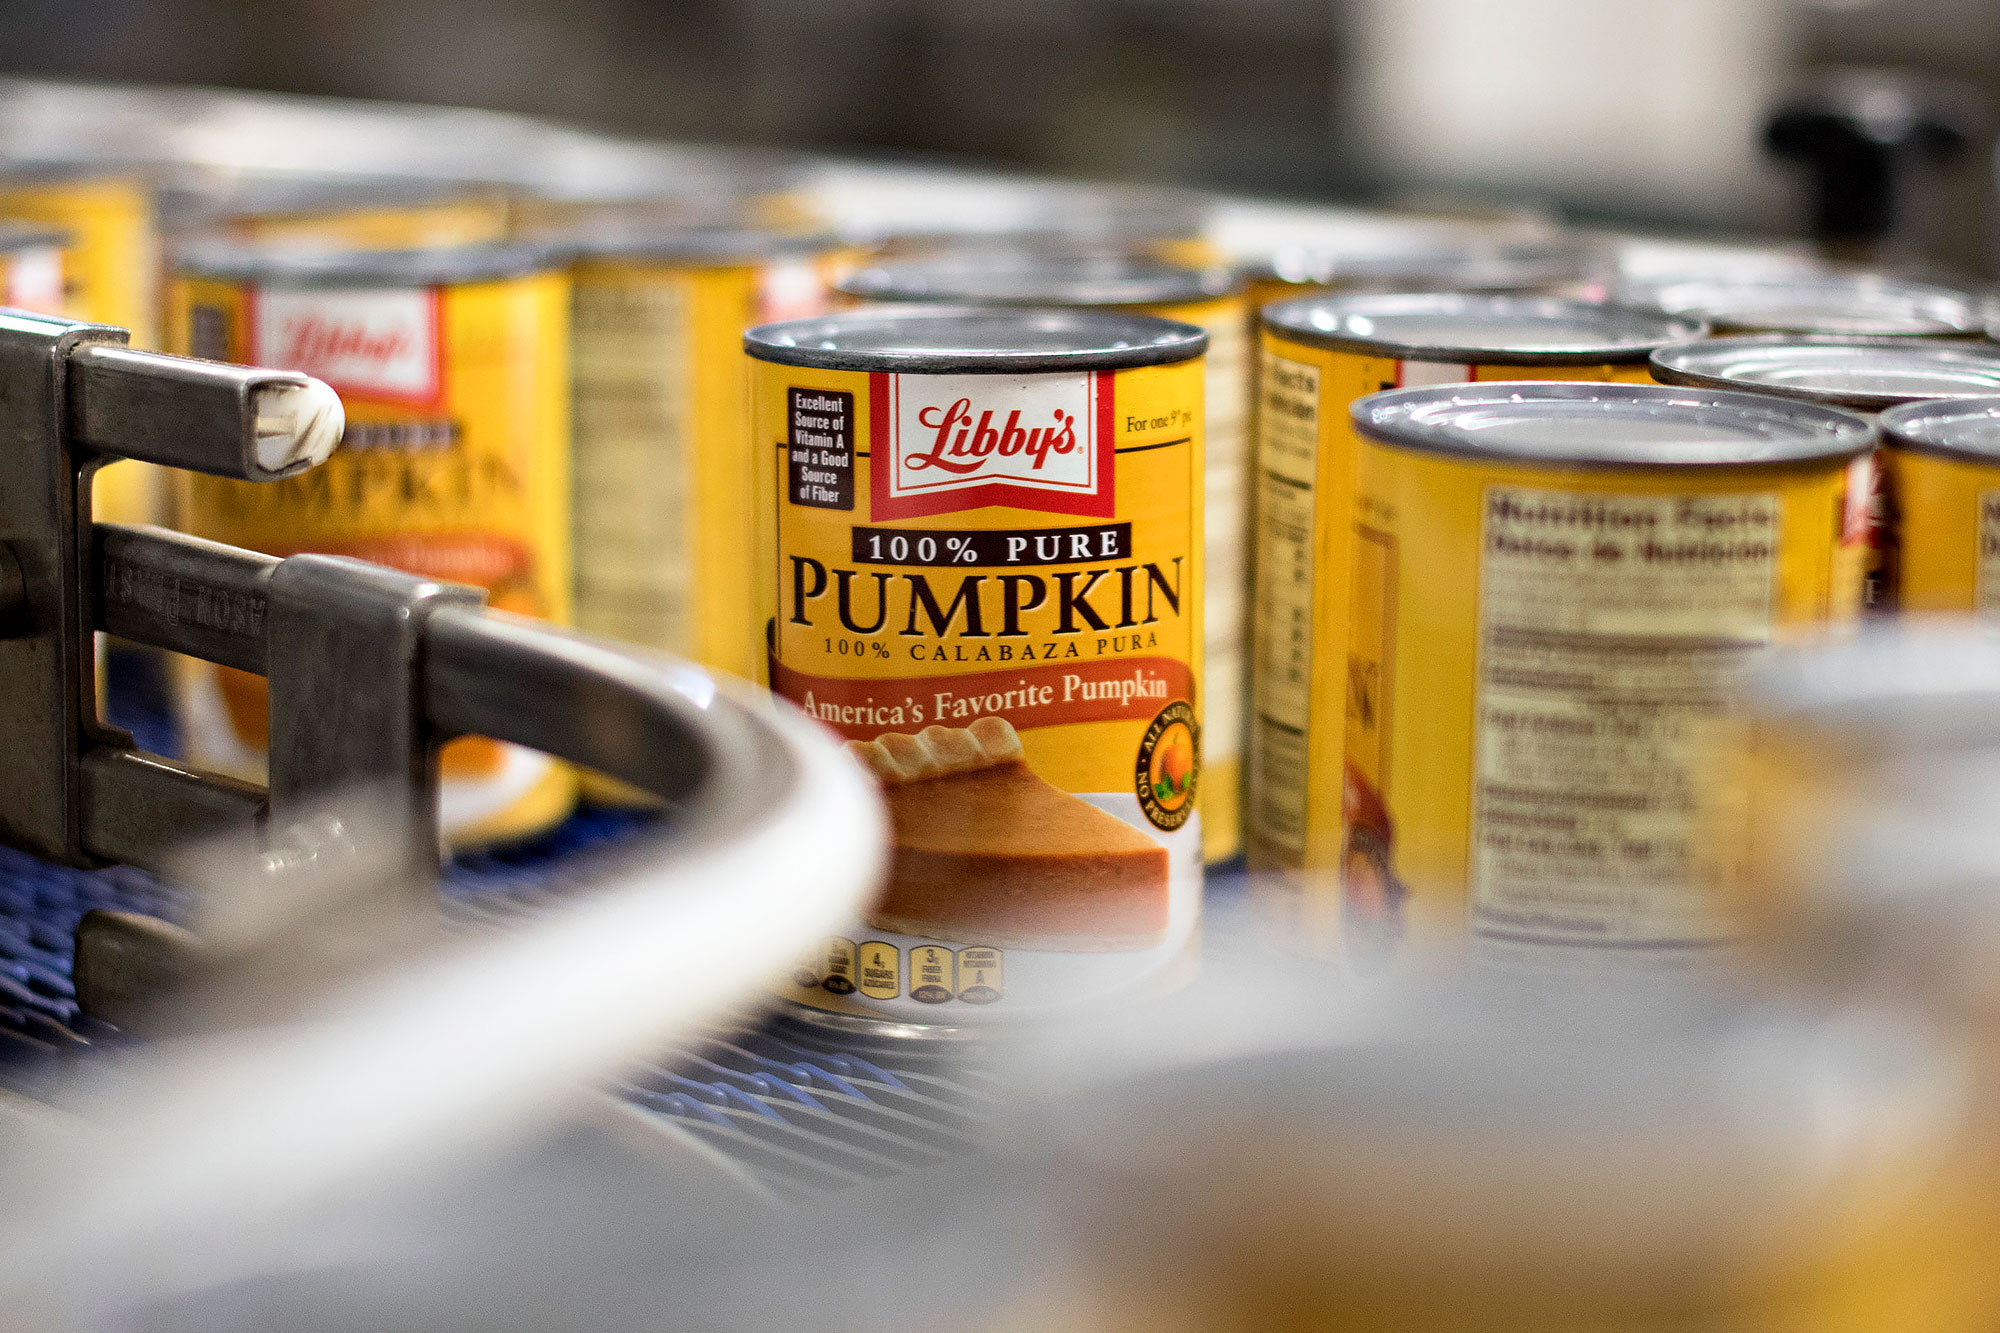 Cans of Libby's Pumpkin travel on a conveyor at the Nestle USA Libby's processing facility in Morton, Illinois, U.S.